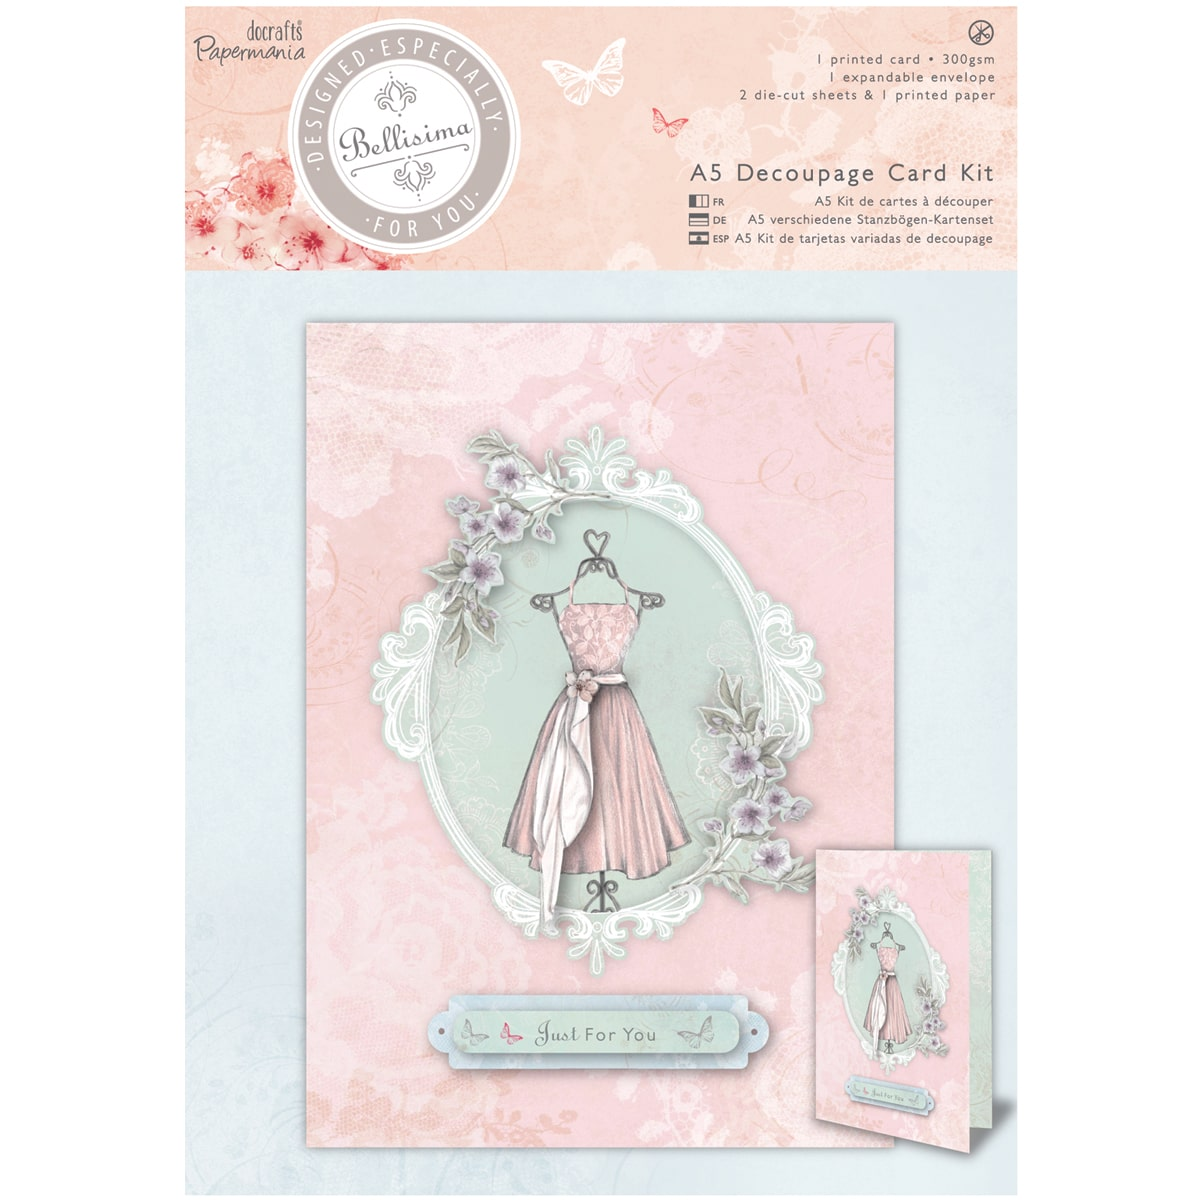 docrafts Papermania Bellisima Card Kit A5-Decoupage Dress